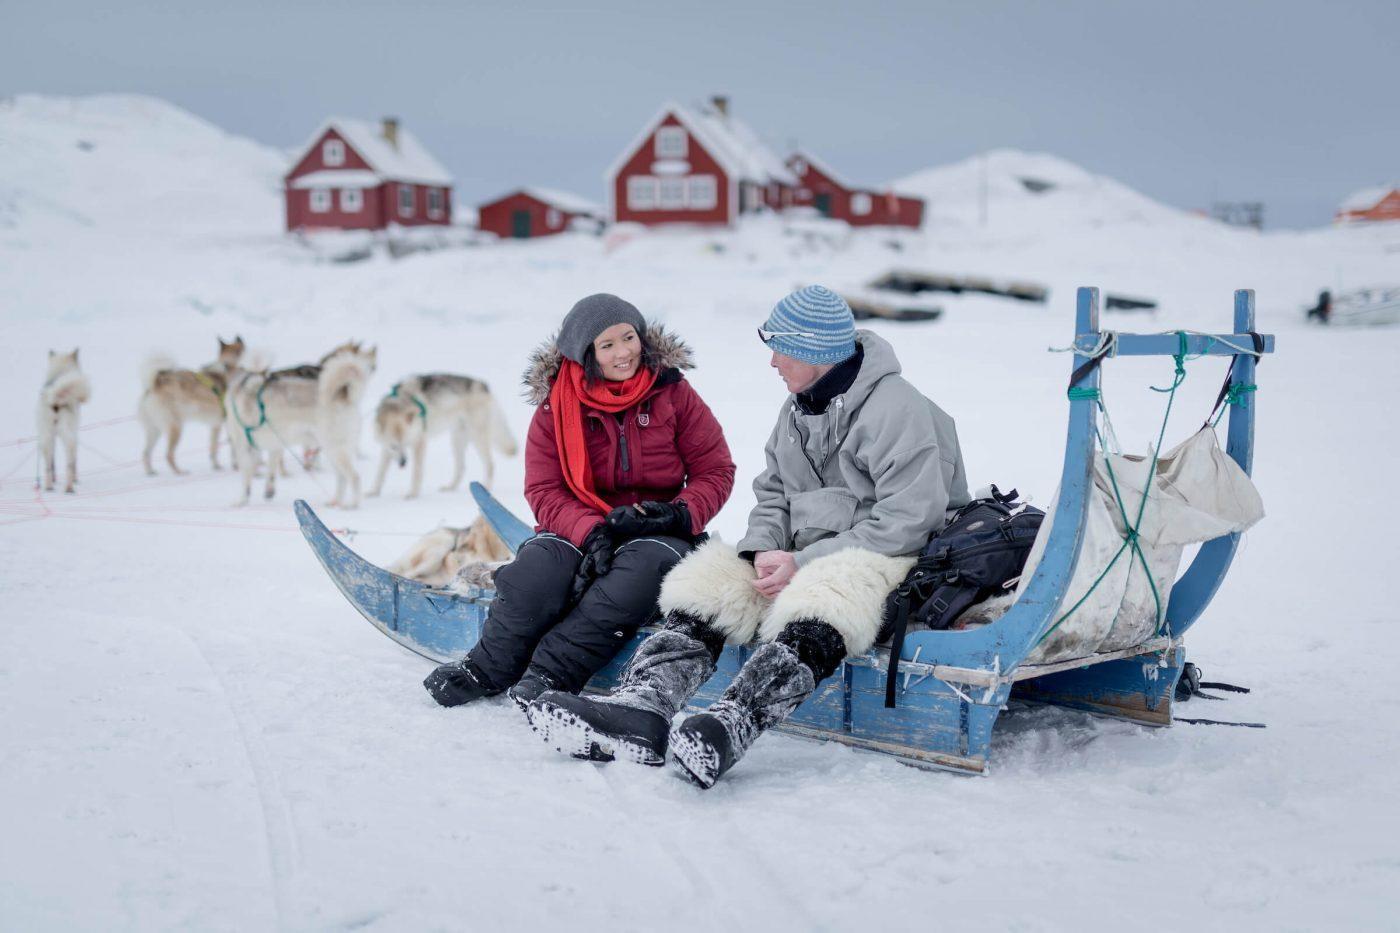 A coffee break in Oqaatsut while on a dog sledding trip in the Ilulissat area in Greenland. By Mads Pihl